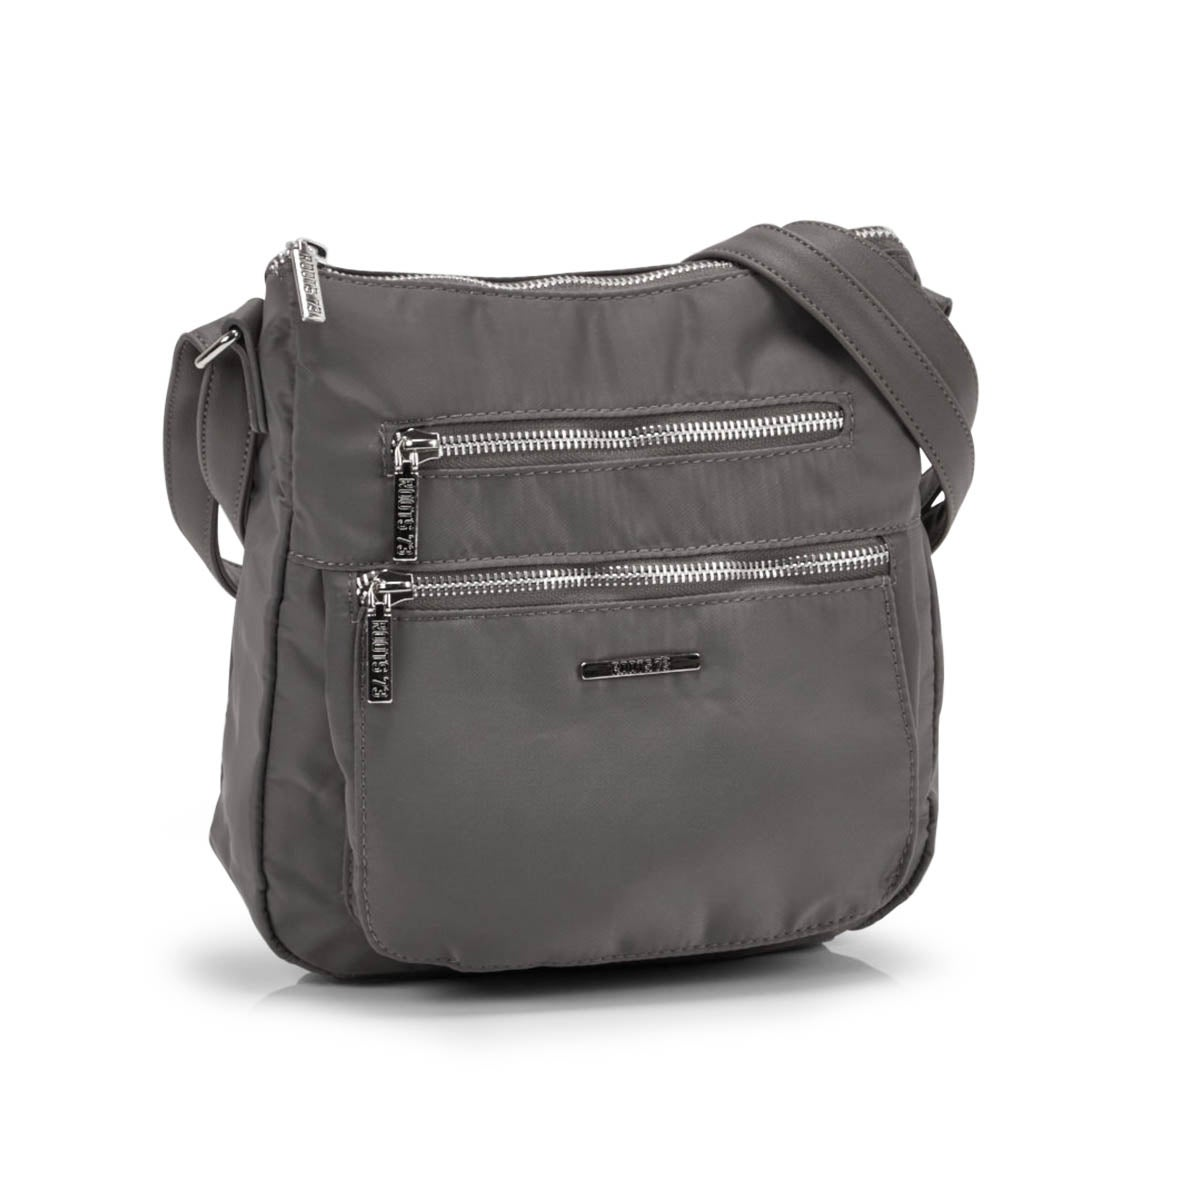 Lds grey north/south top zip crossbody